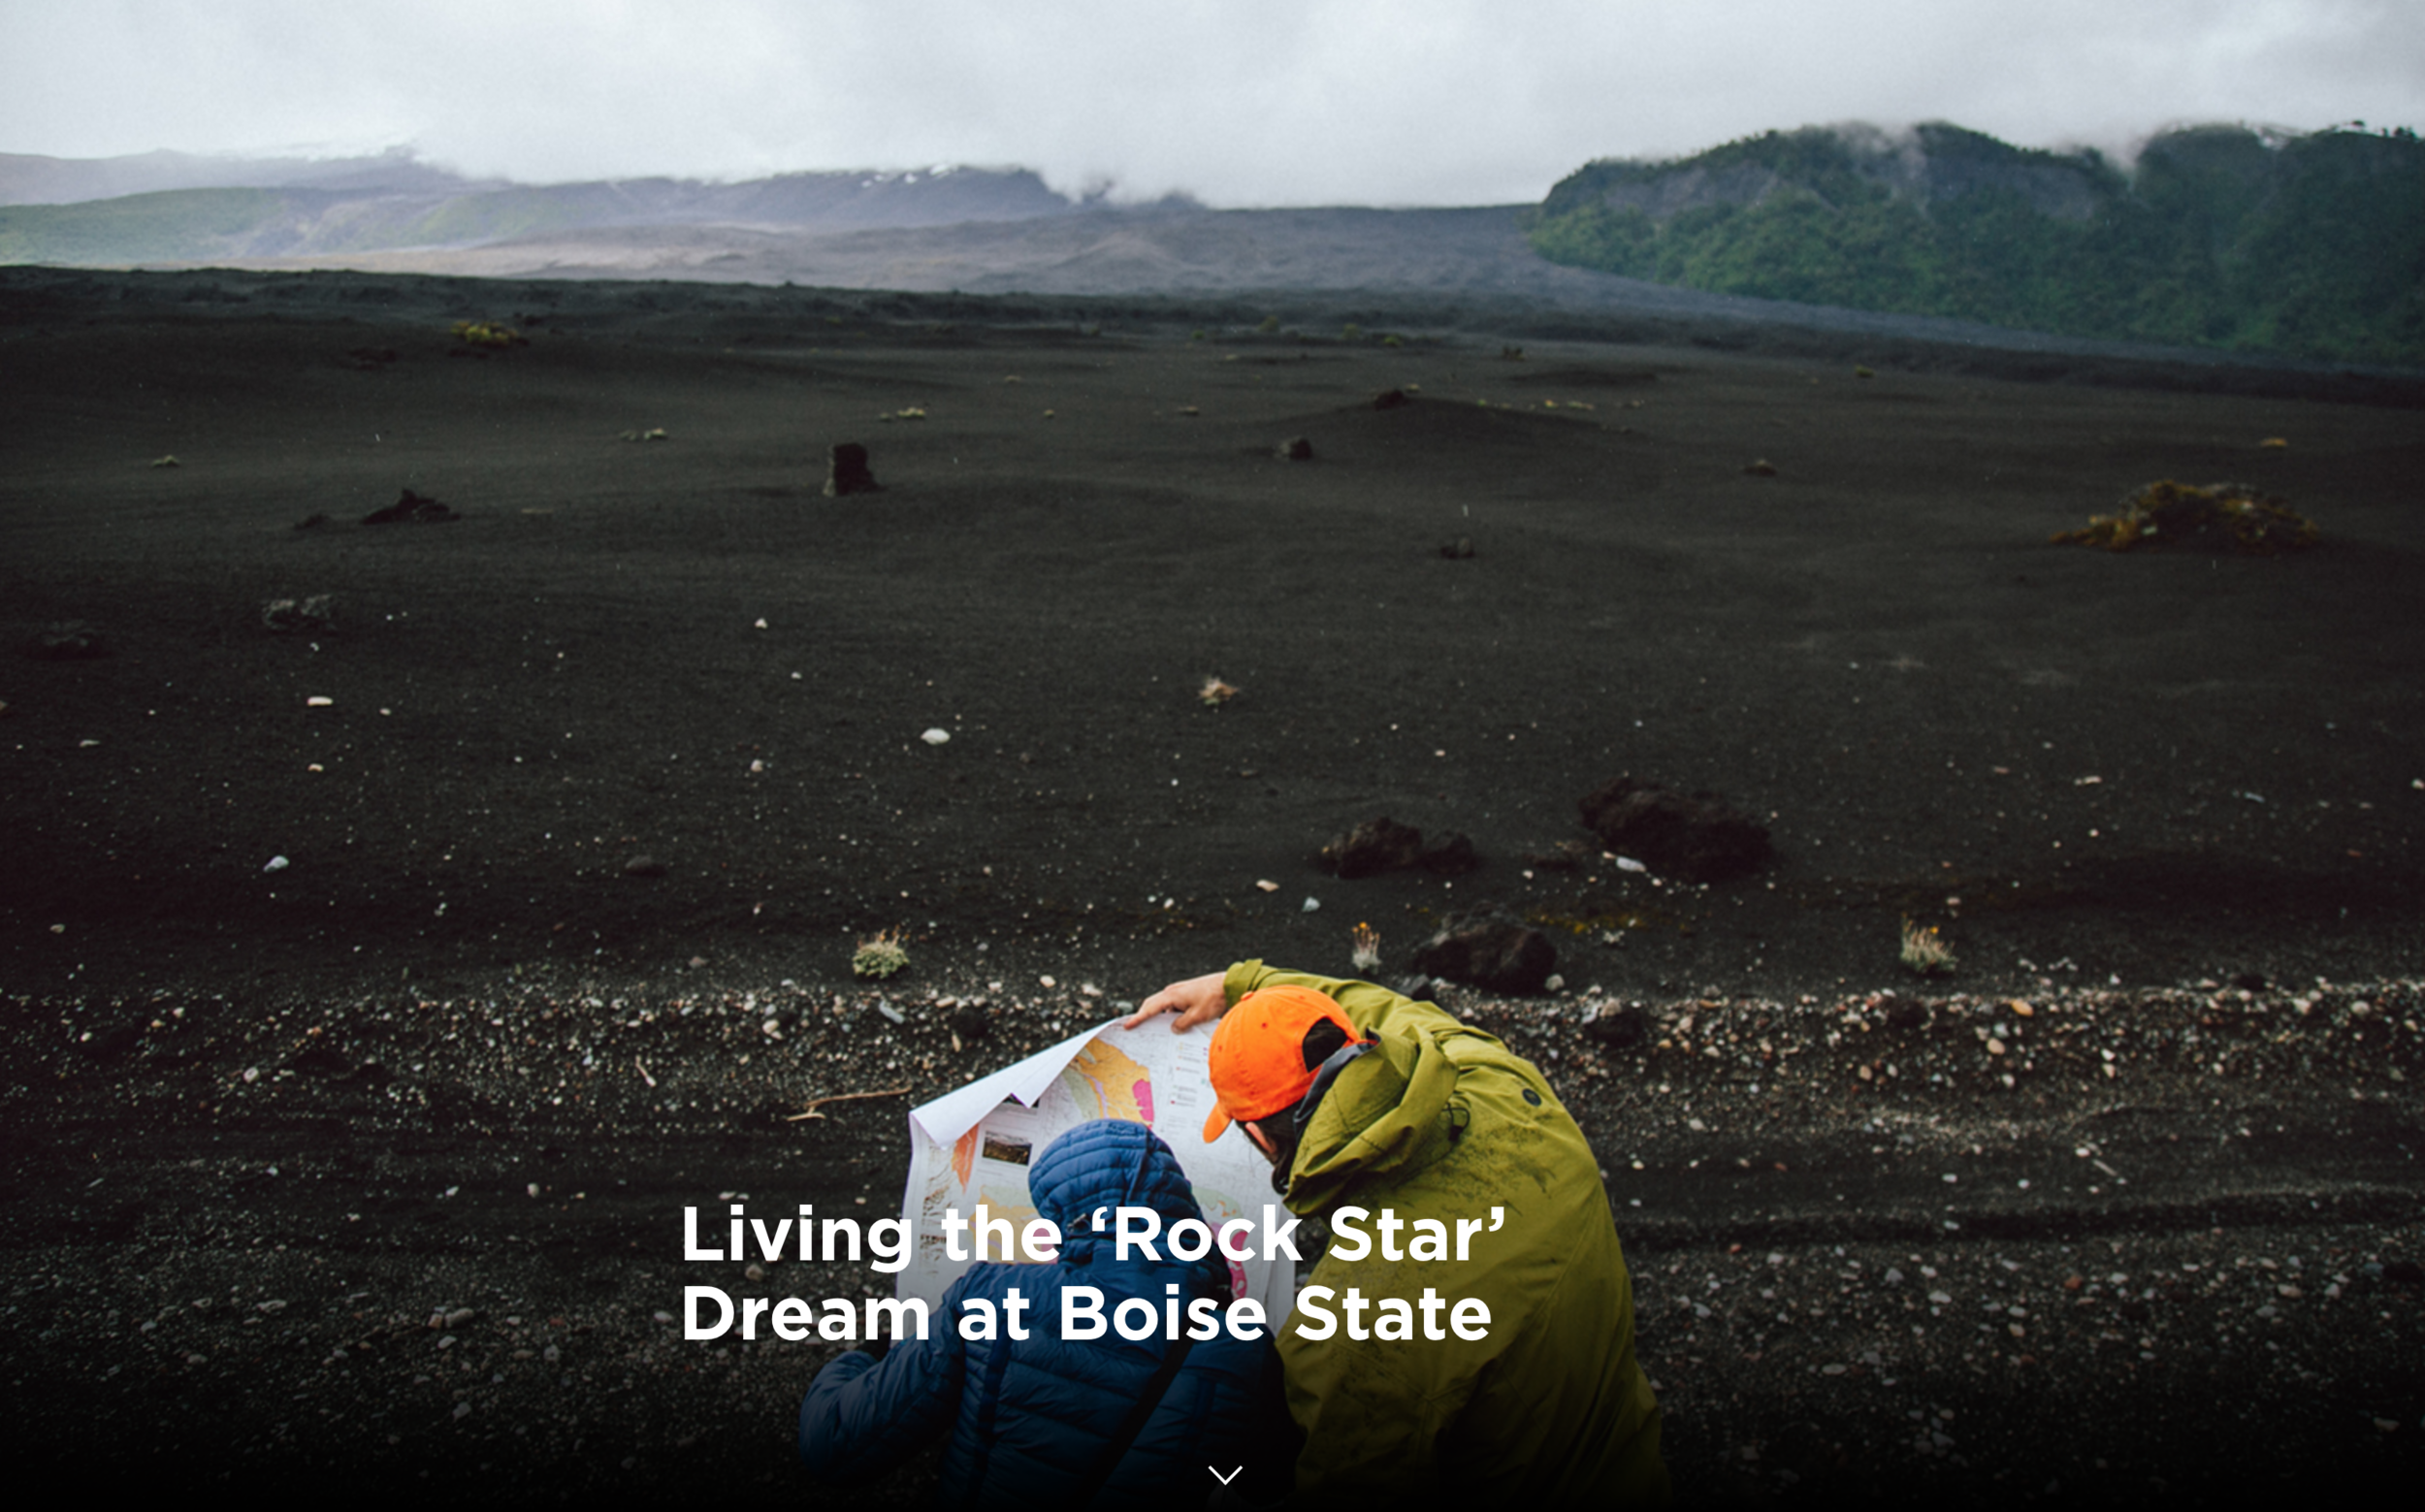 Living the 'Rock Star' Dream at Boise State